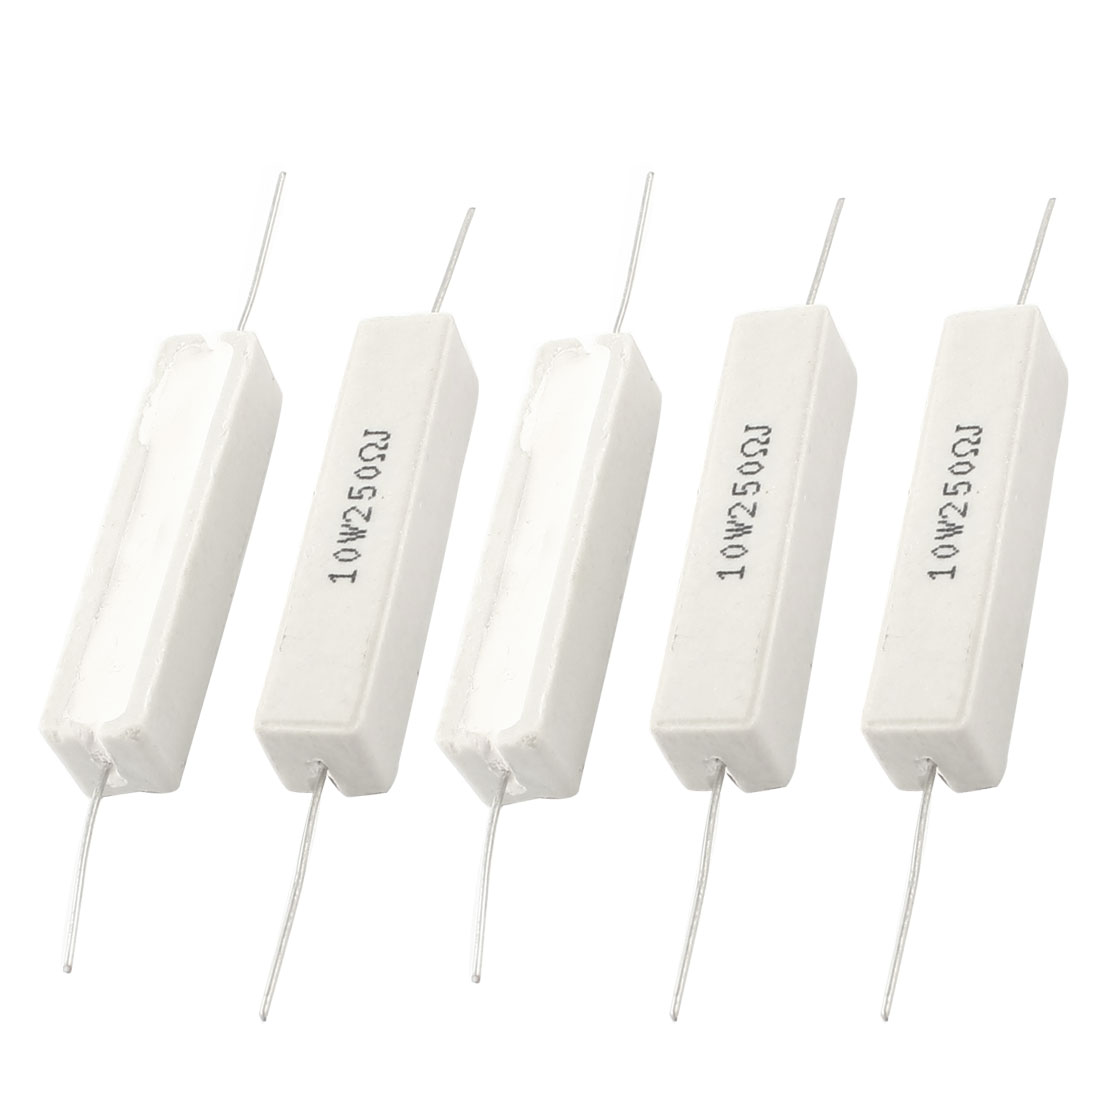 5Pcs 250 Ohm 10 Watt 5% Radial Lead Rectangle Ceramic Cement Resistor